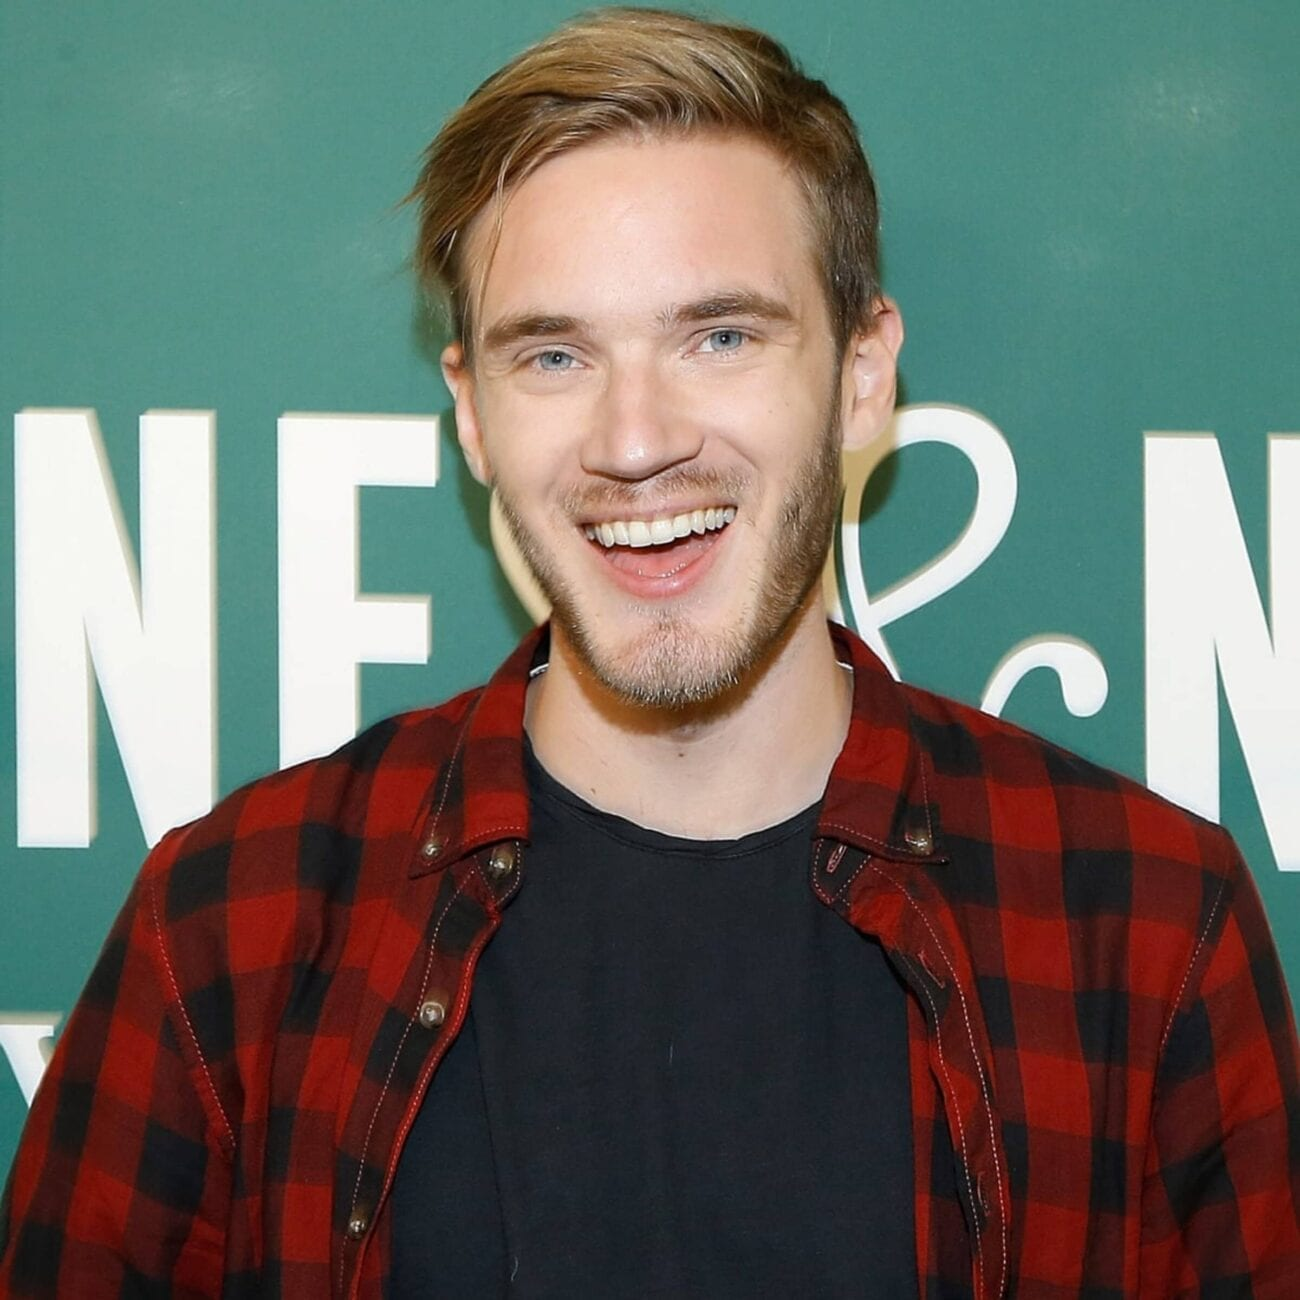 Everyone at least has heard of PewDiePie, the insanely popular YouTube sensation. Learn more about the meme master PewDiePie now.